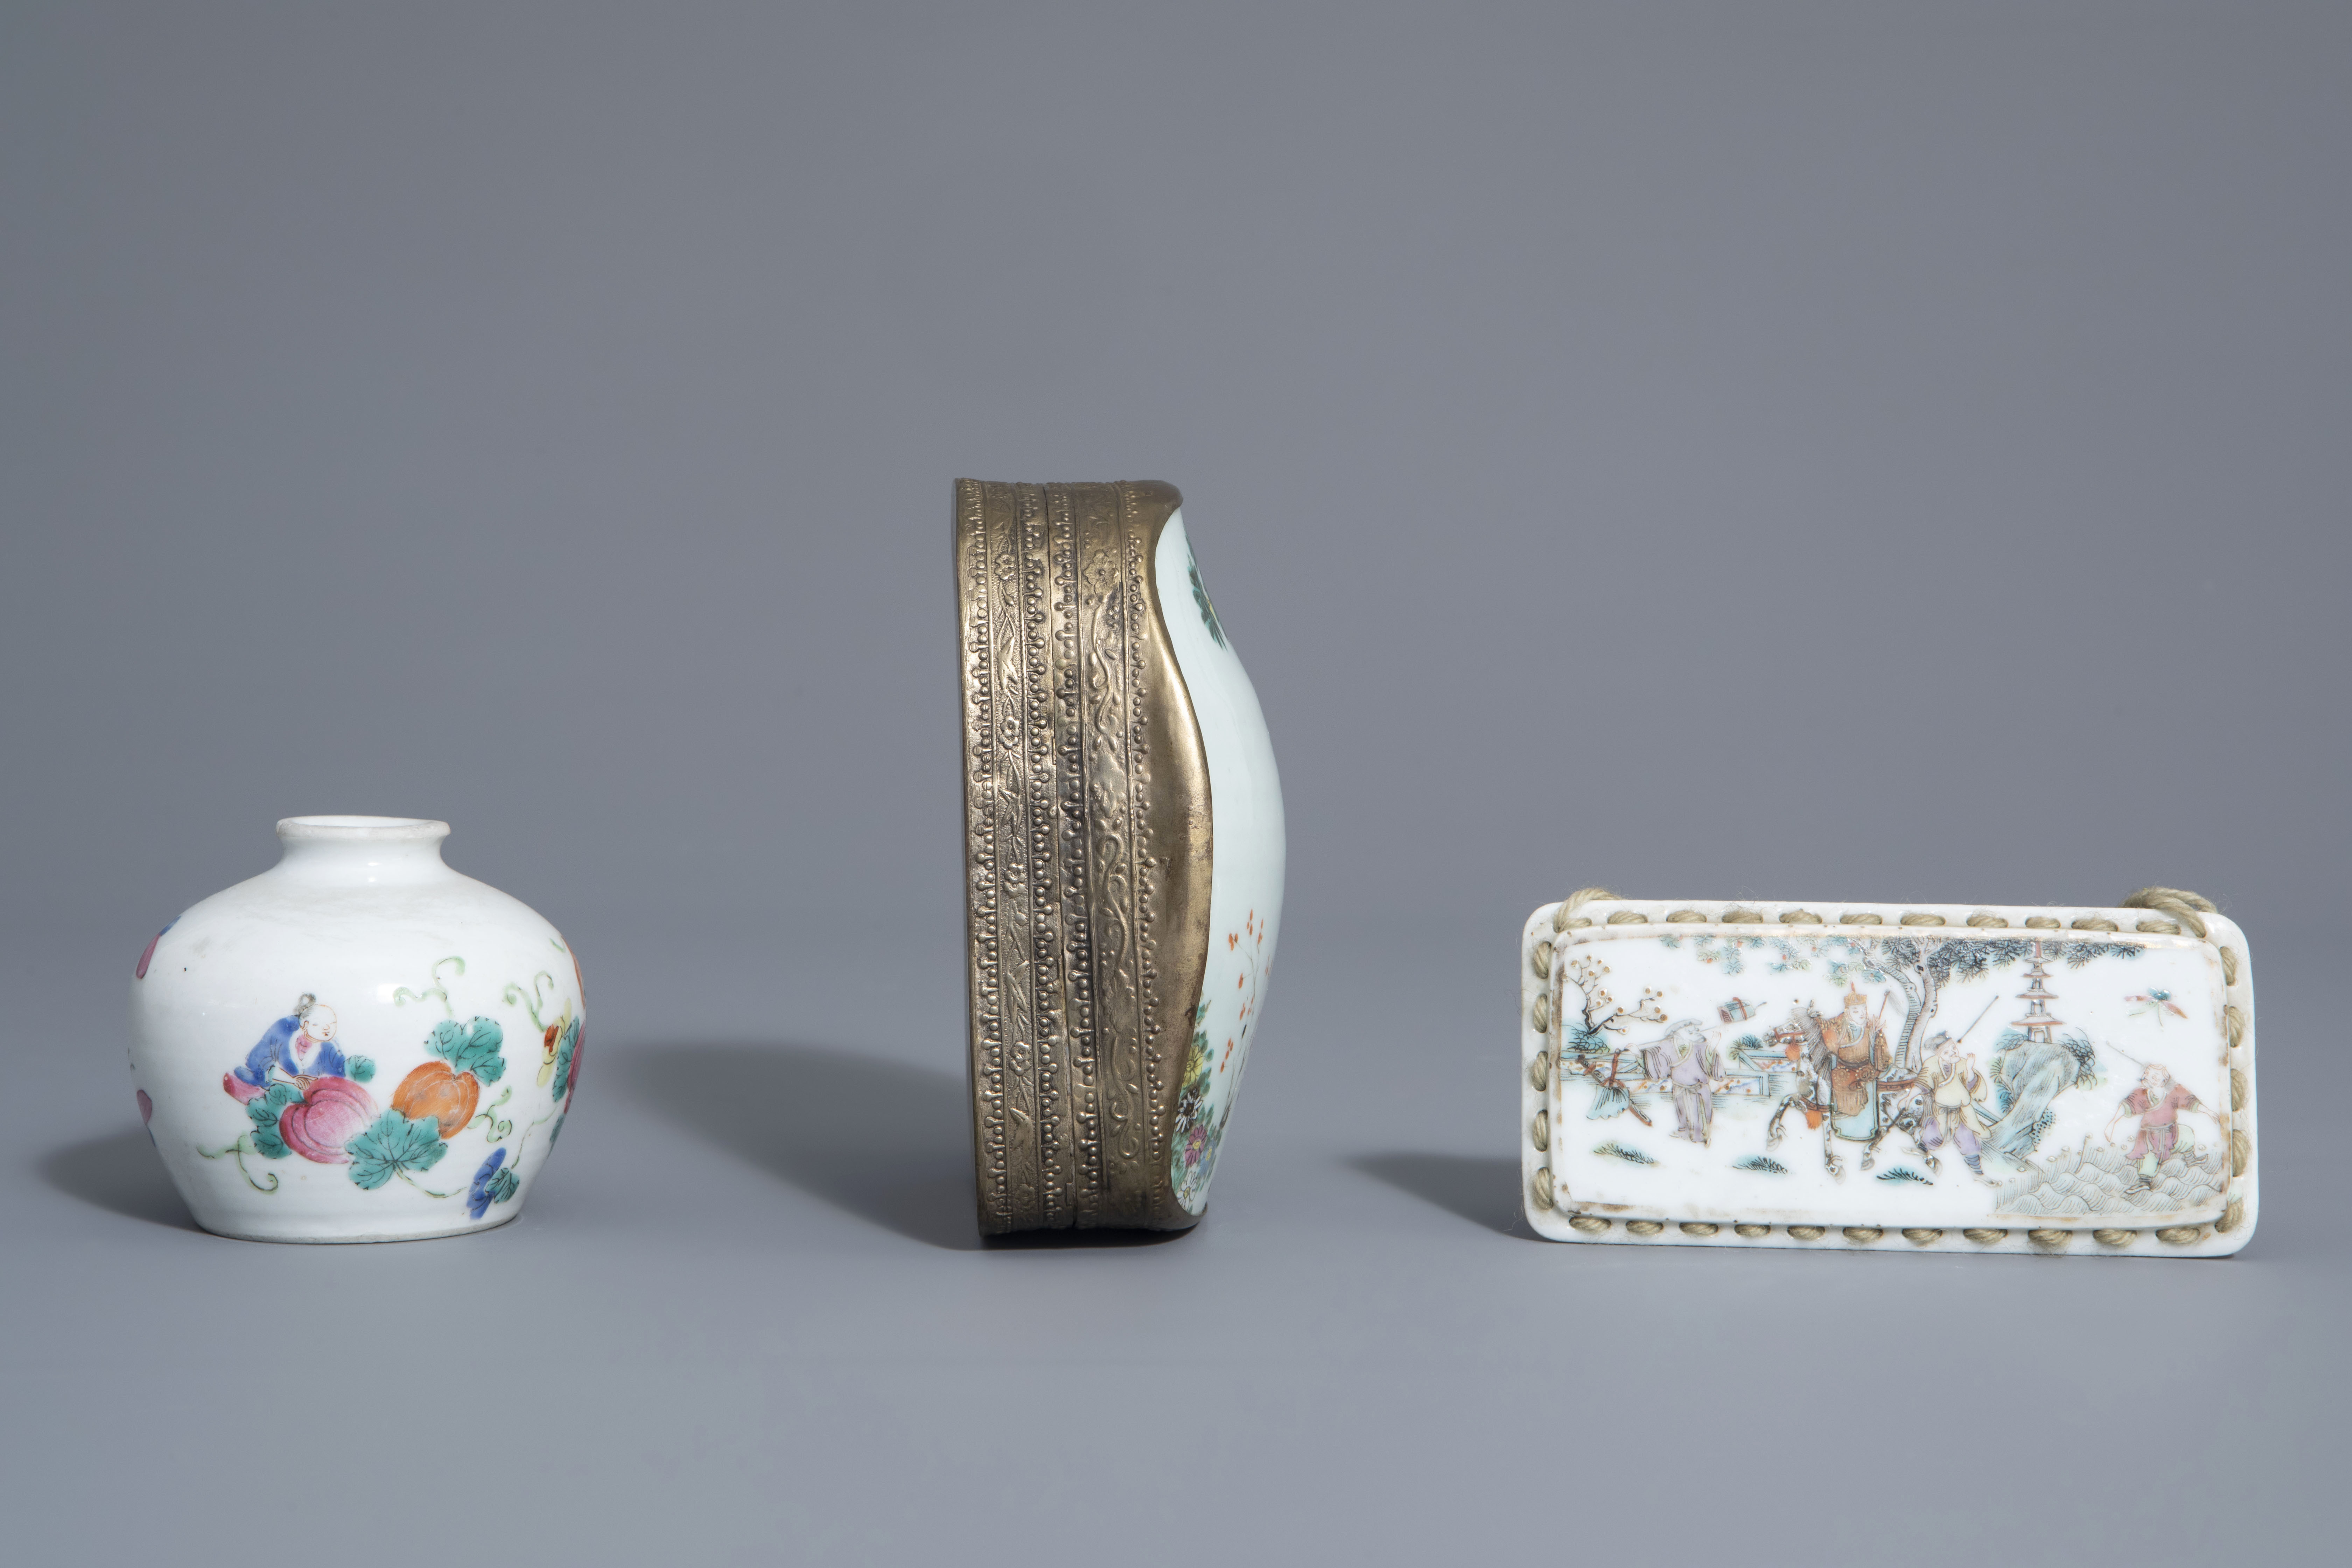 A varied collection of Chinese famille rose and blue and white porcelain, 19th/20th C. - Image 9 of 14